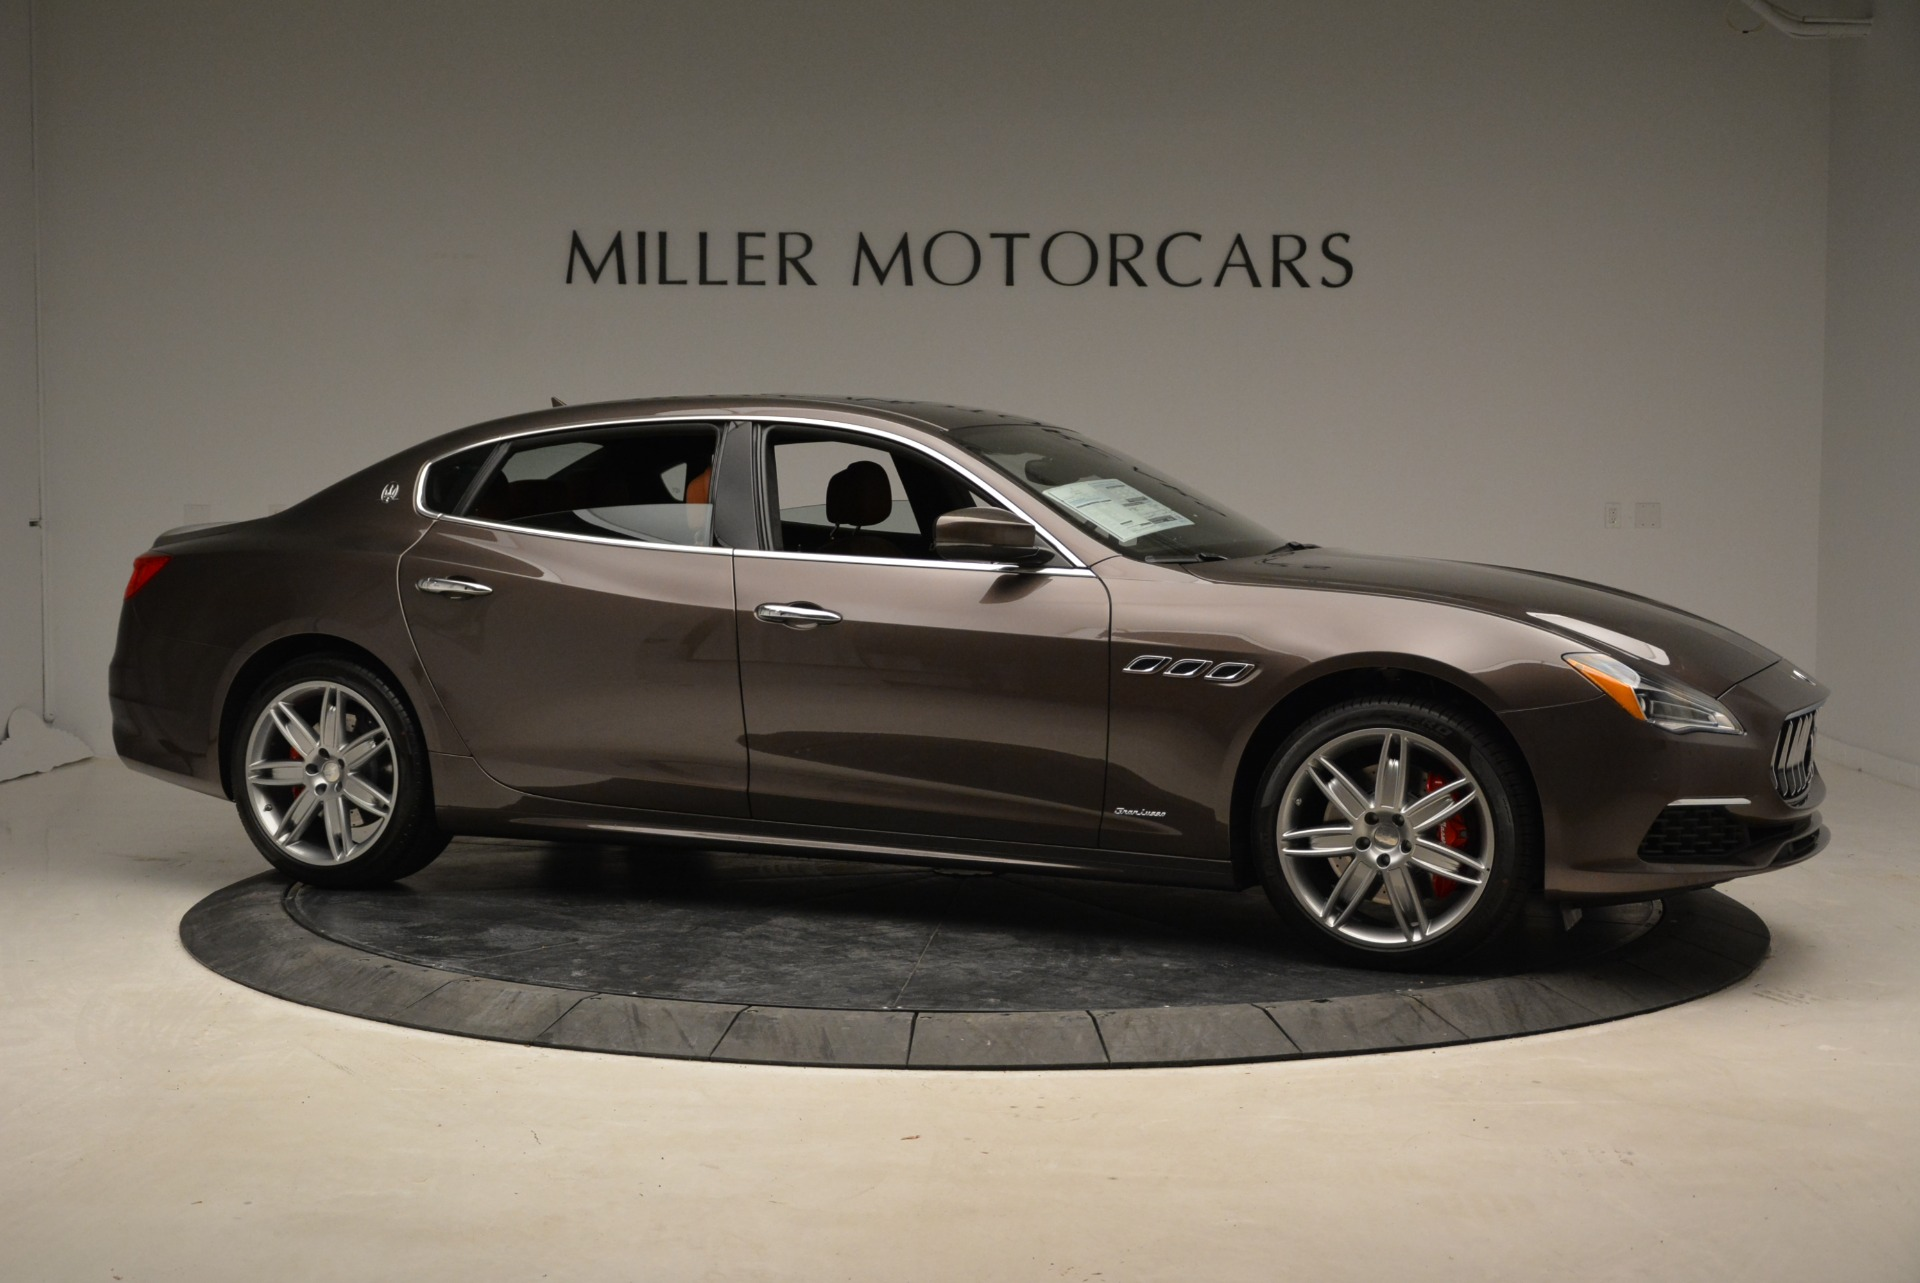 New 2018 Maserati Quattroporte S Q4 GranLusso For Sale In Greenwich, CT 1926_p11